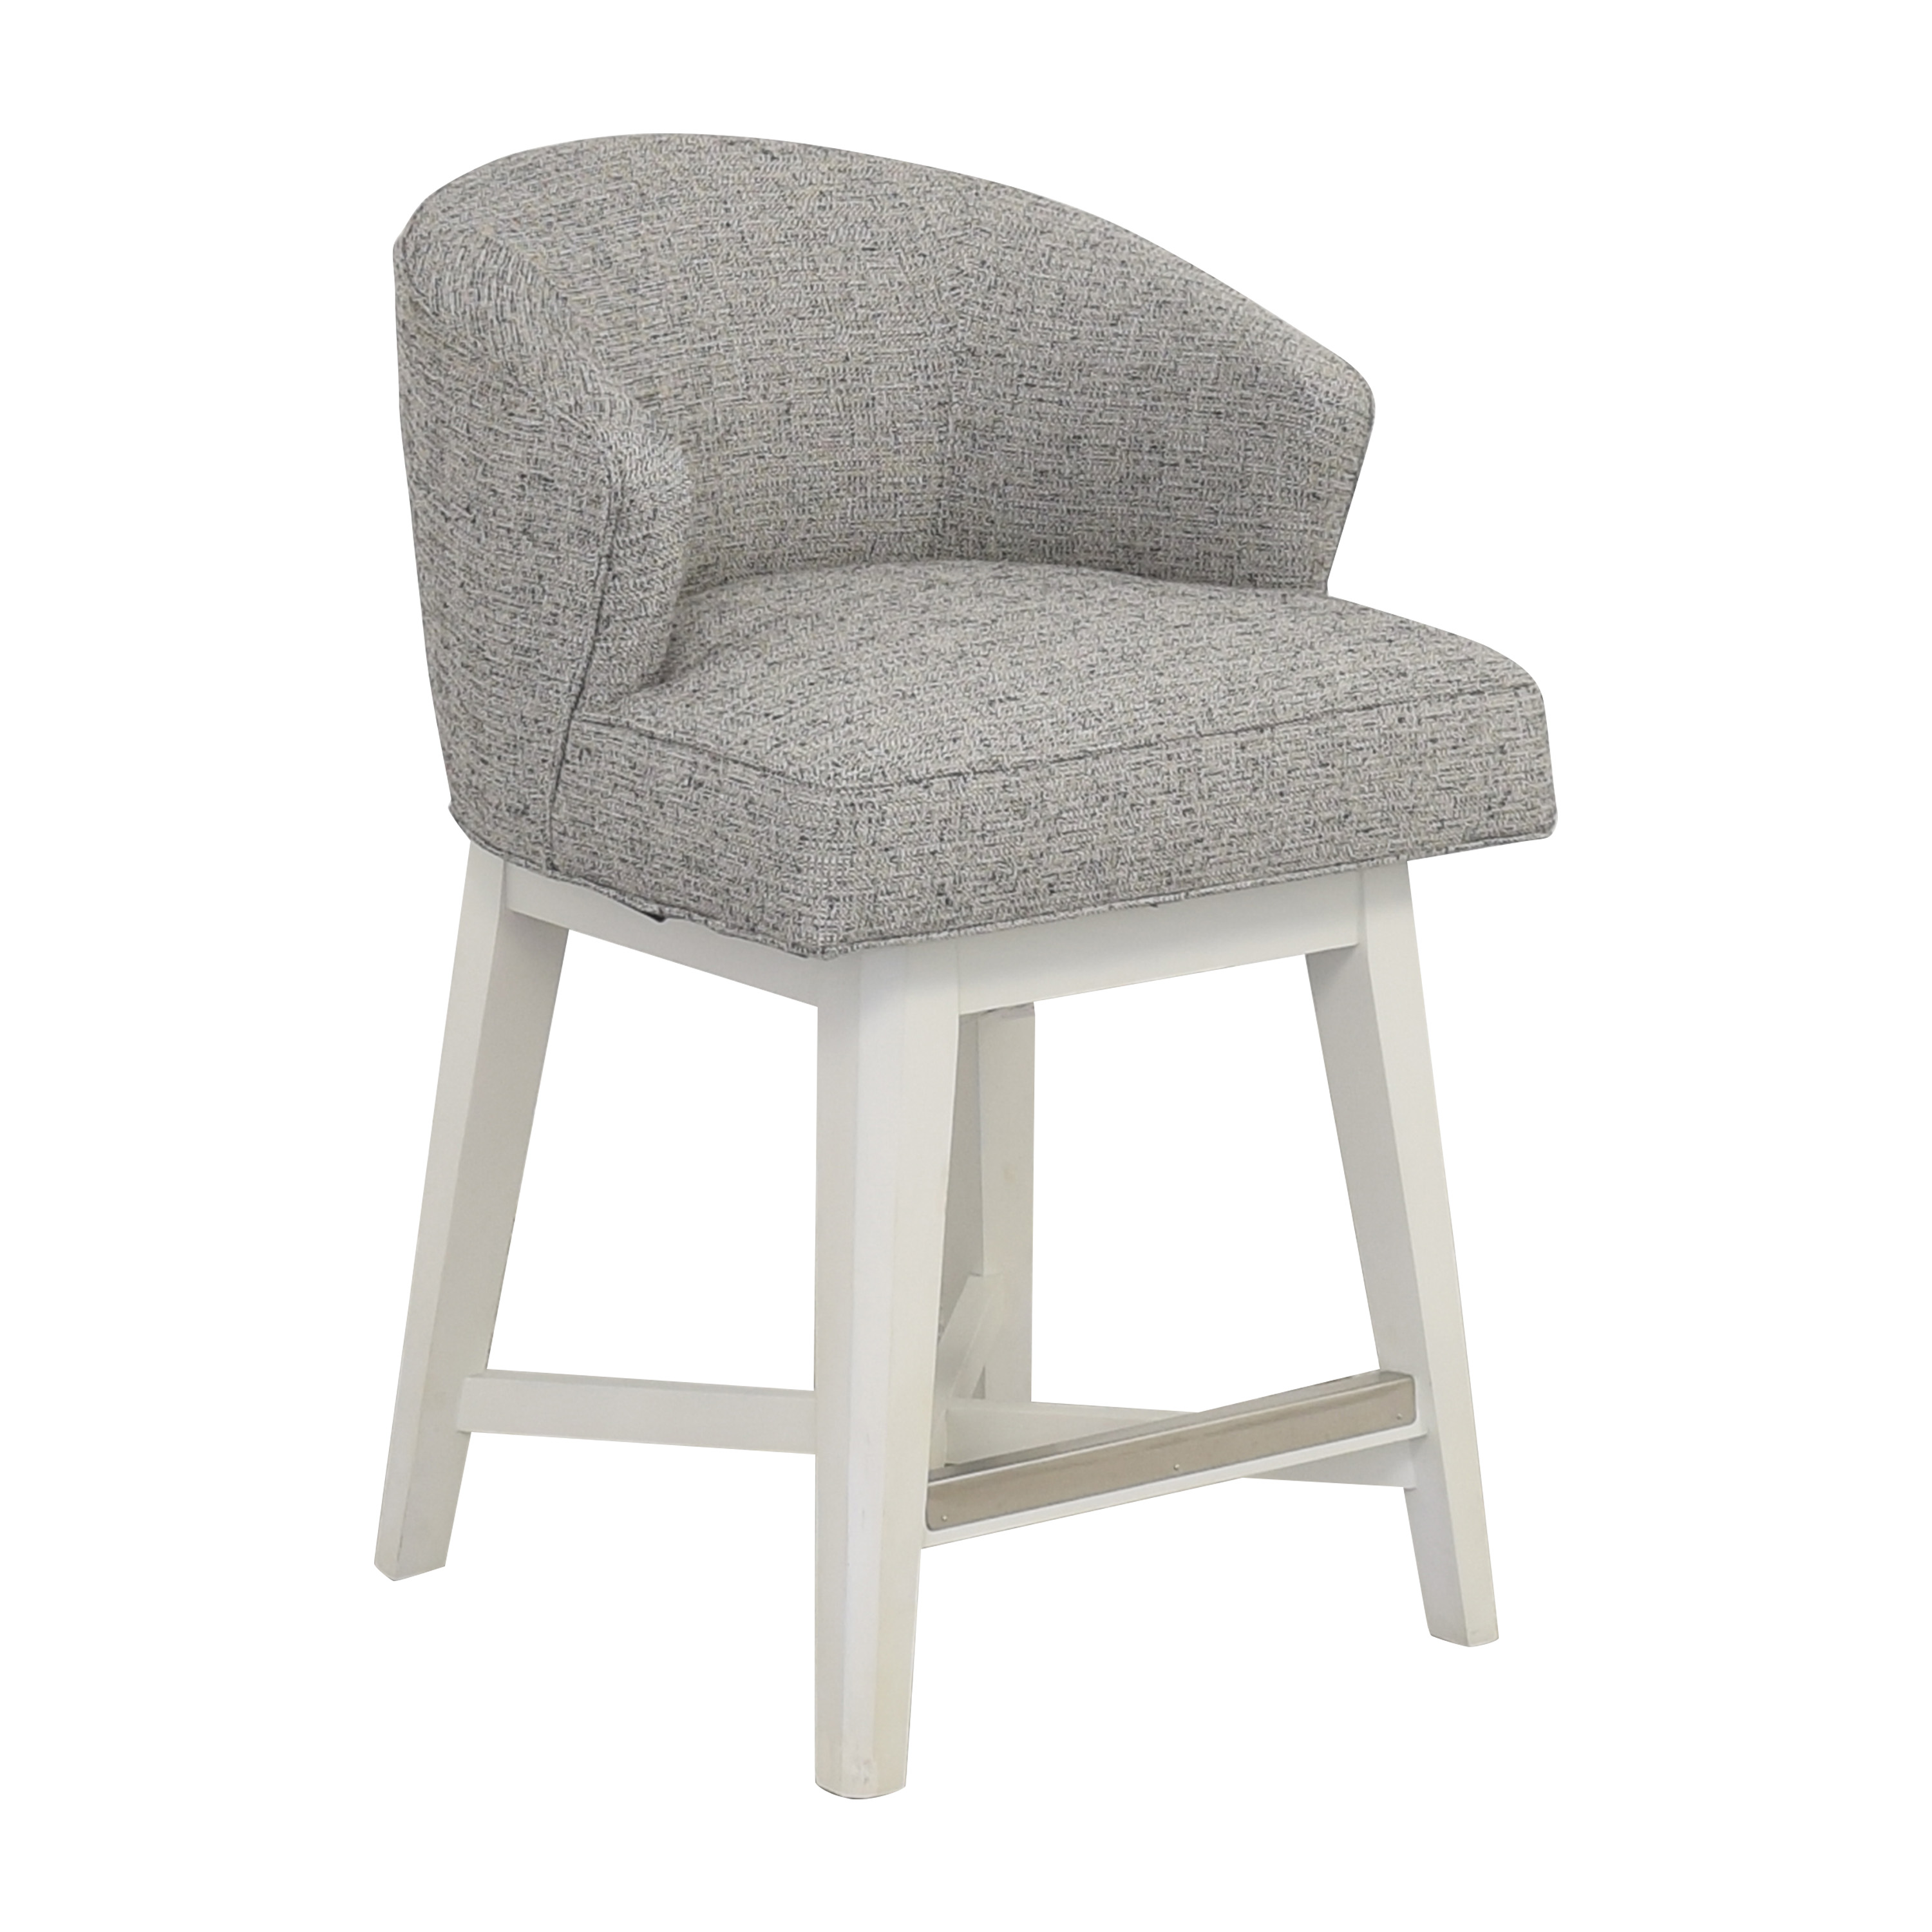 Vanguard Furniture Clive Daniel Counter Stool on sale